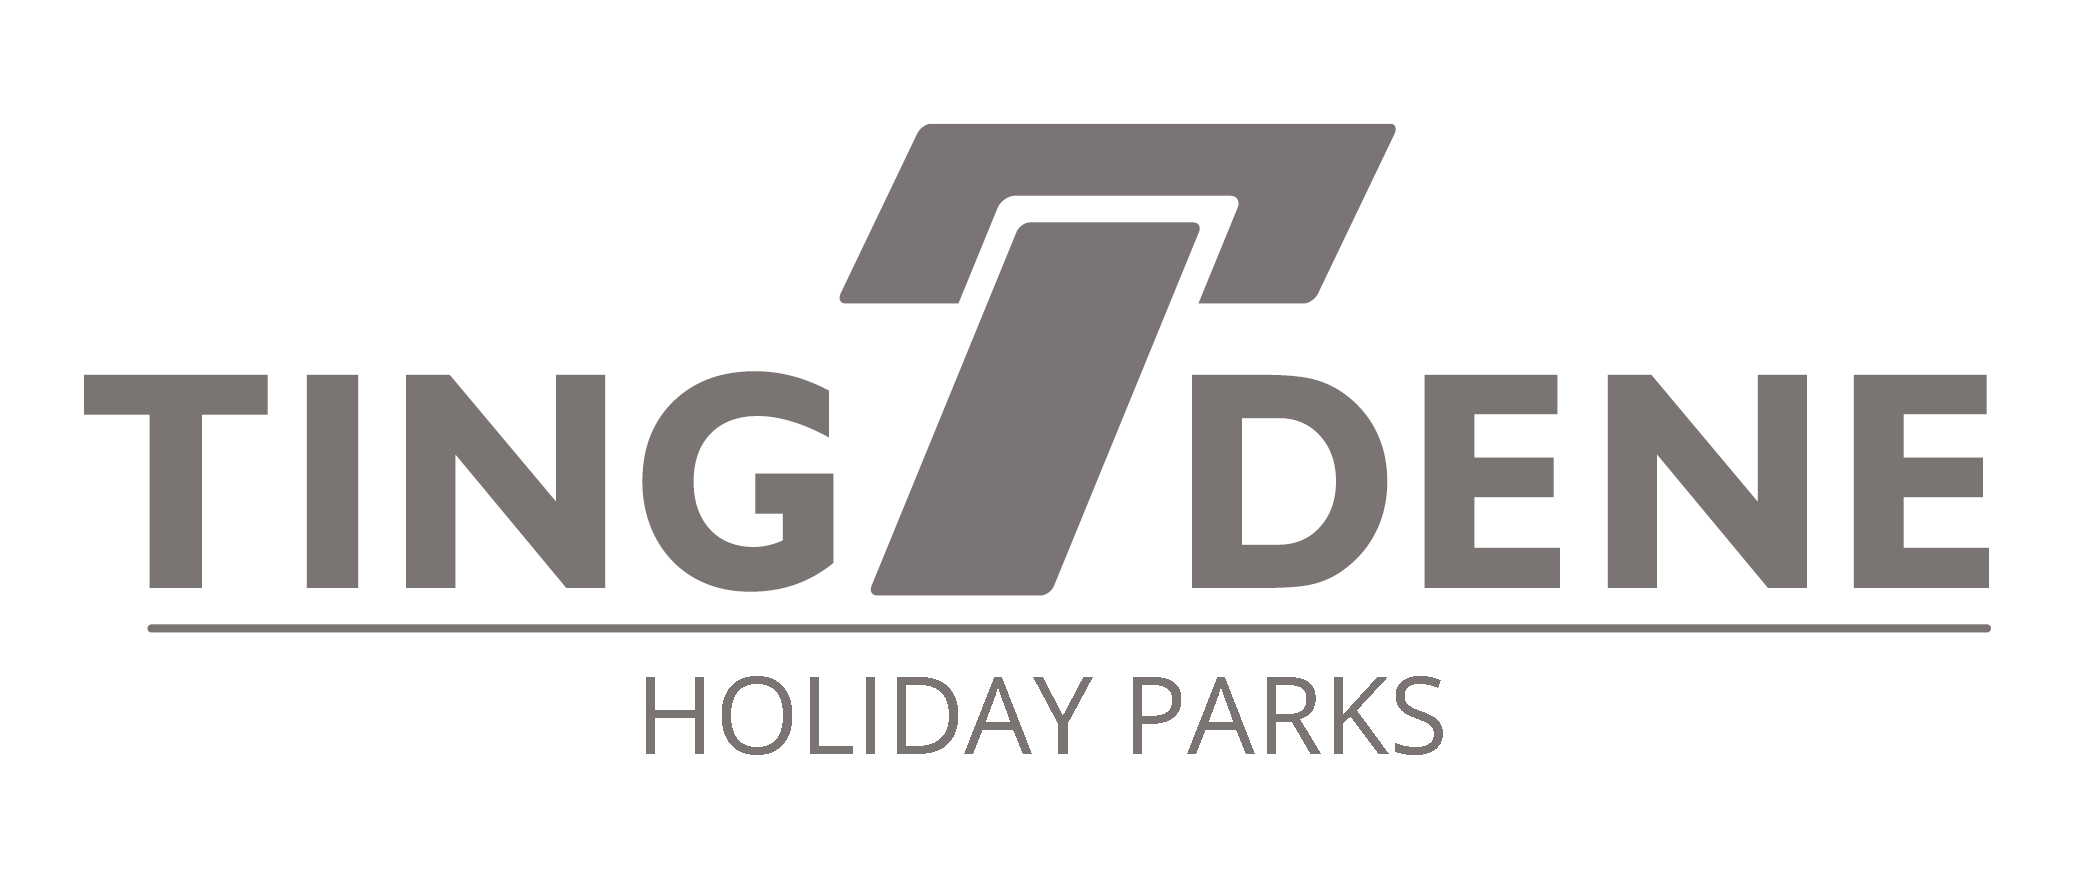 Tingdene Holiday Parks Ltd